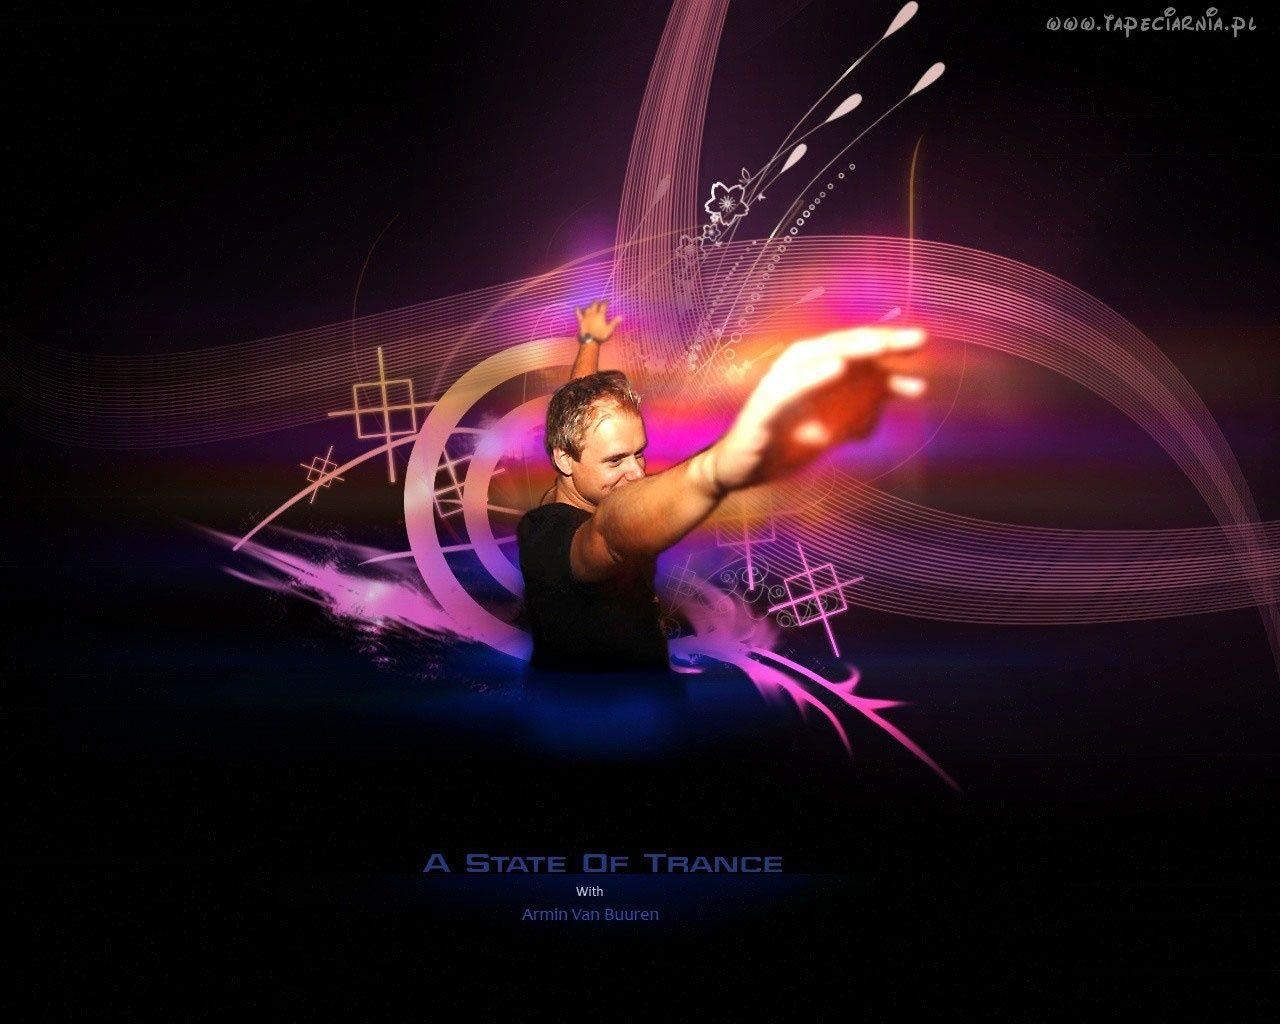 A State Of Trance 2016 Wallpapers 1280x1024